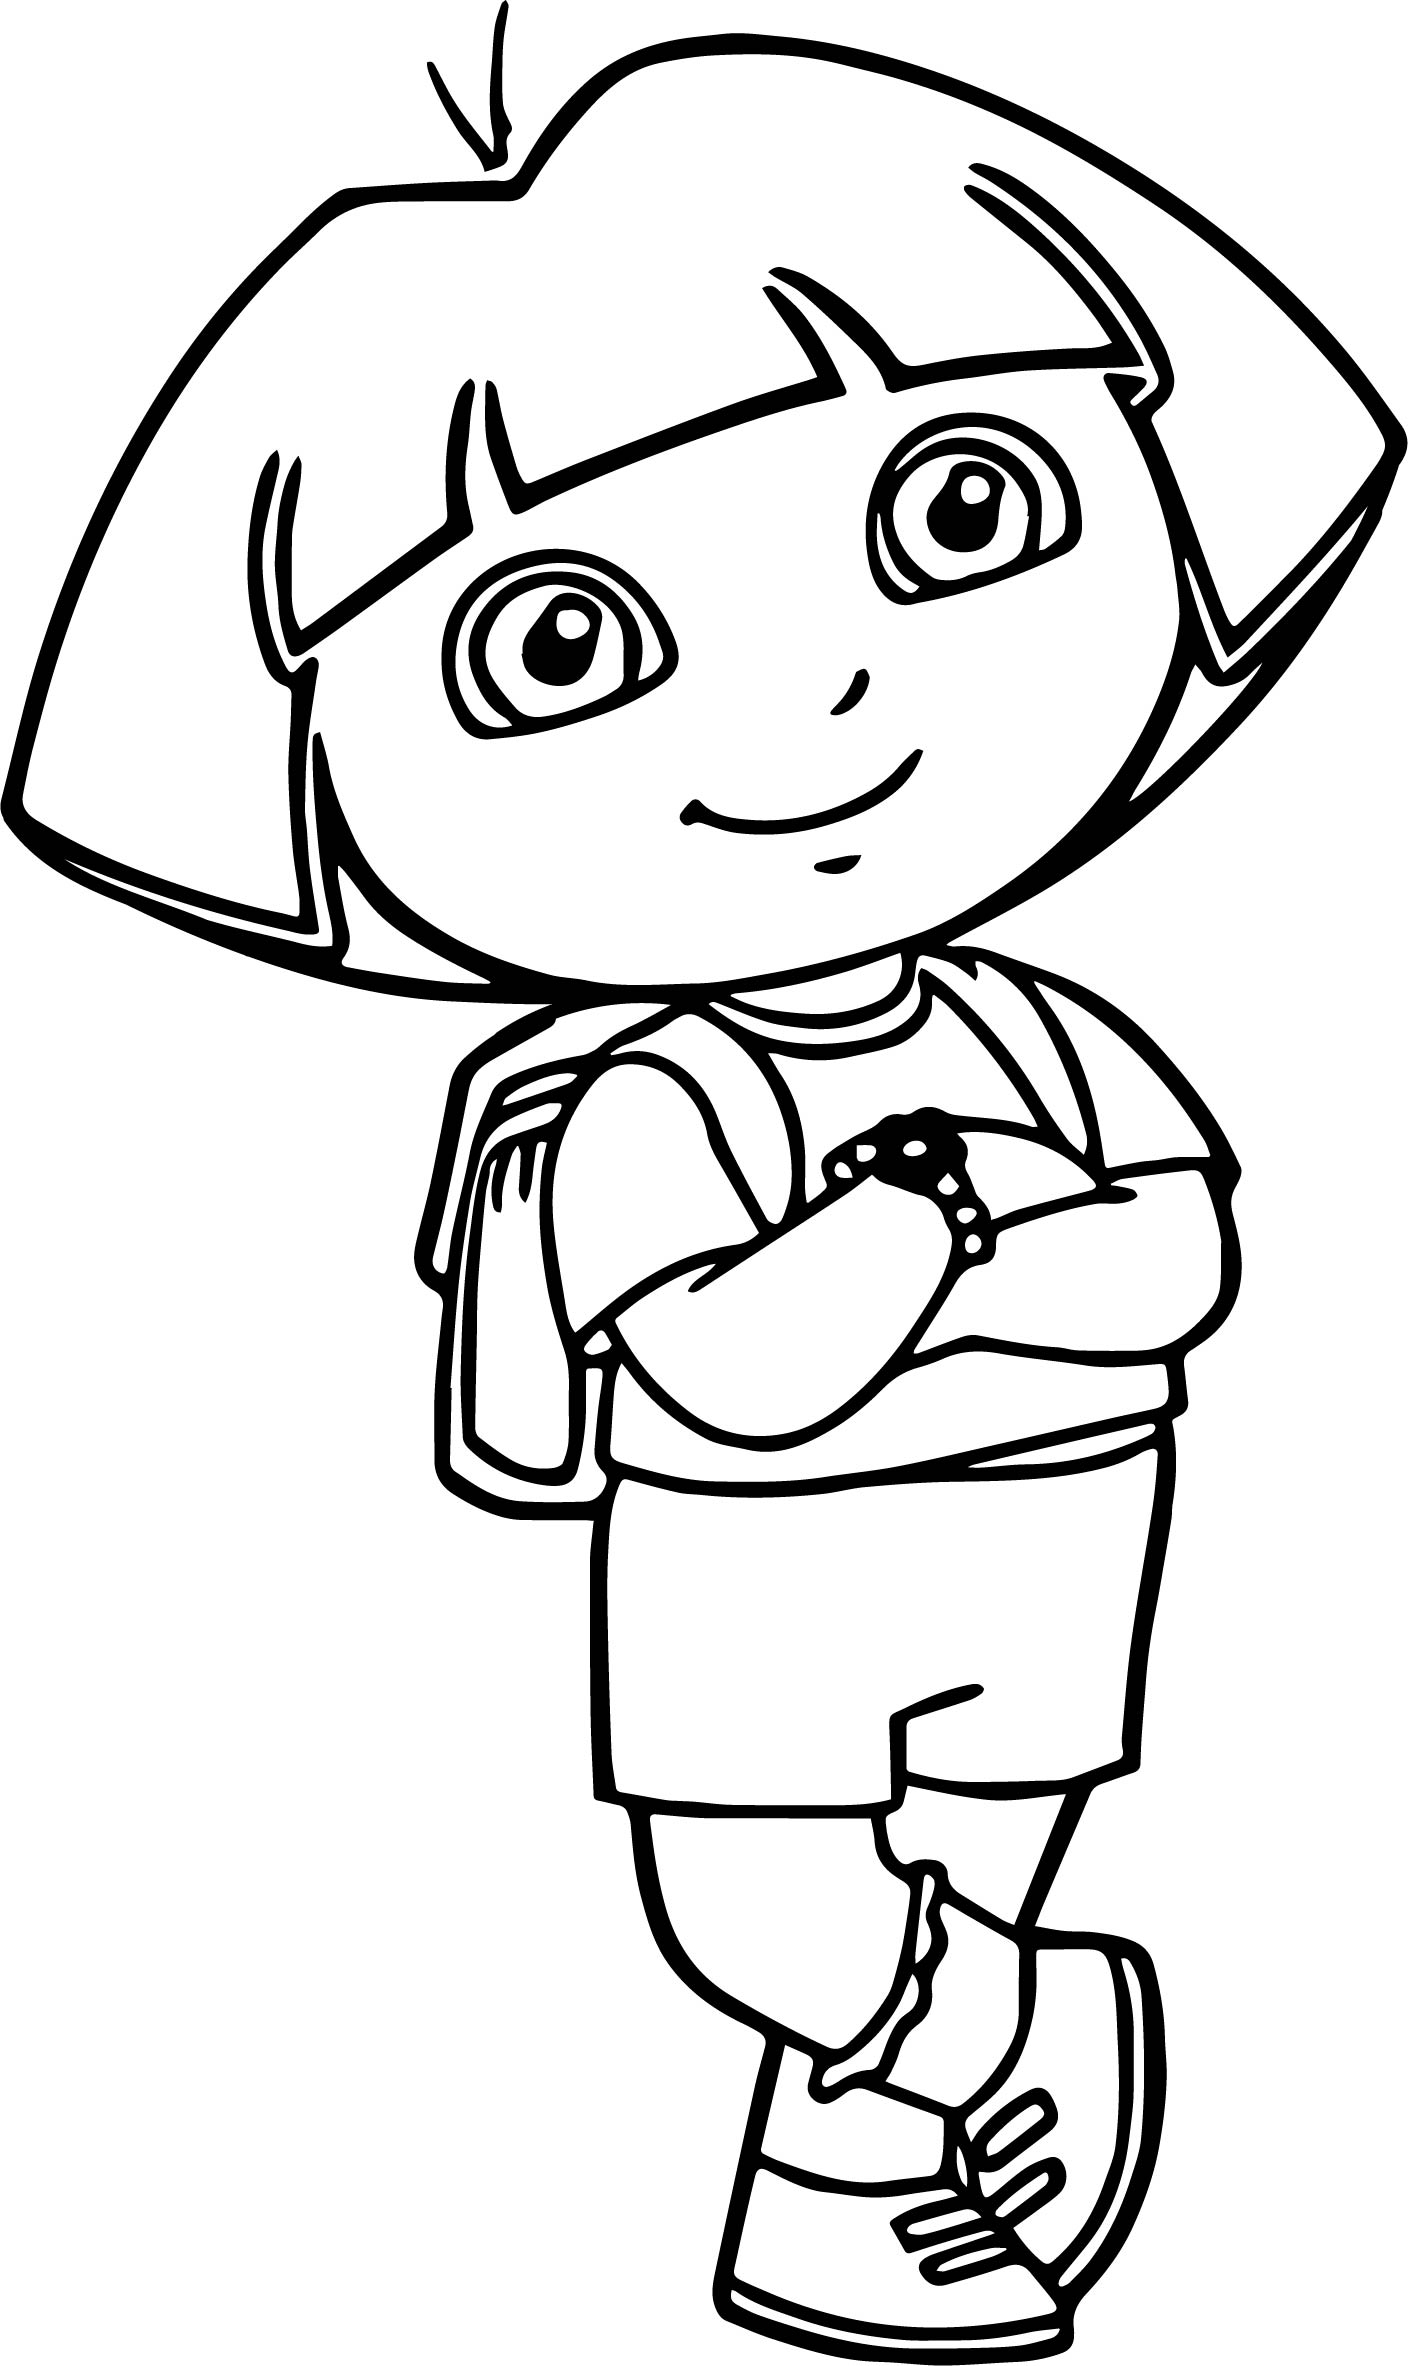 Dora The Explorer Calm Coloring Page